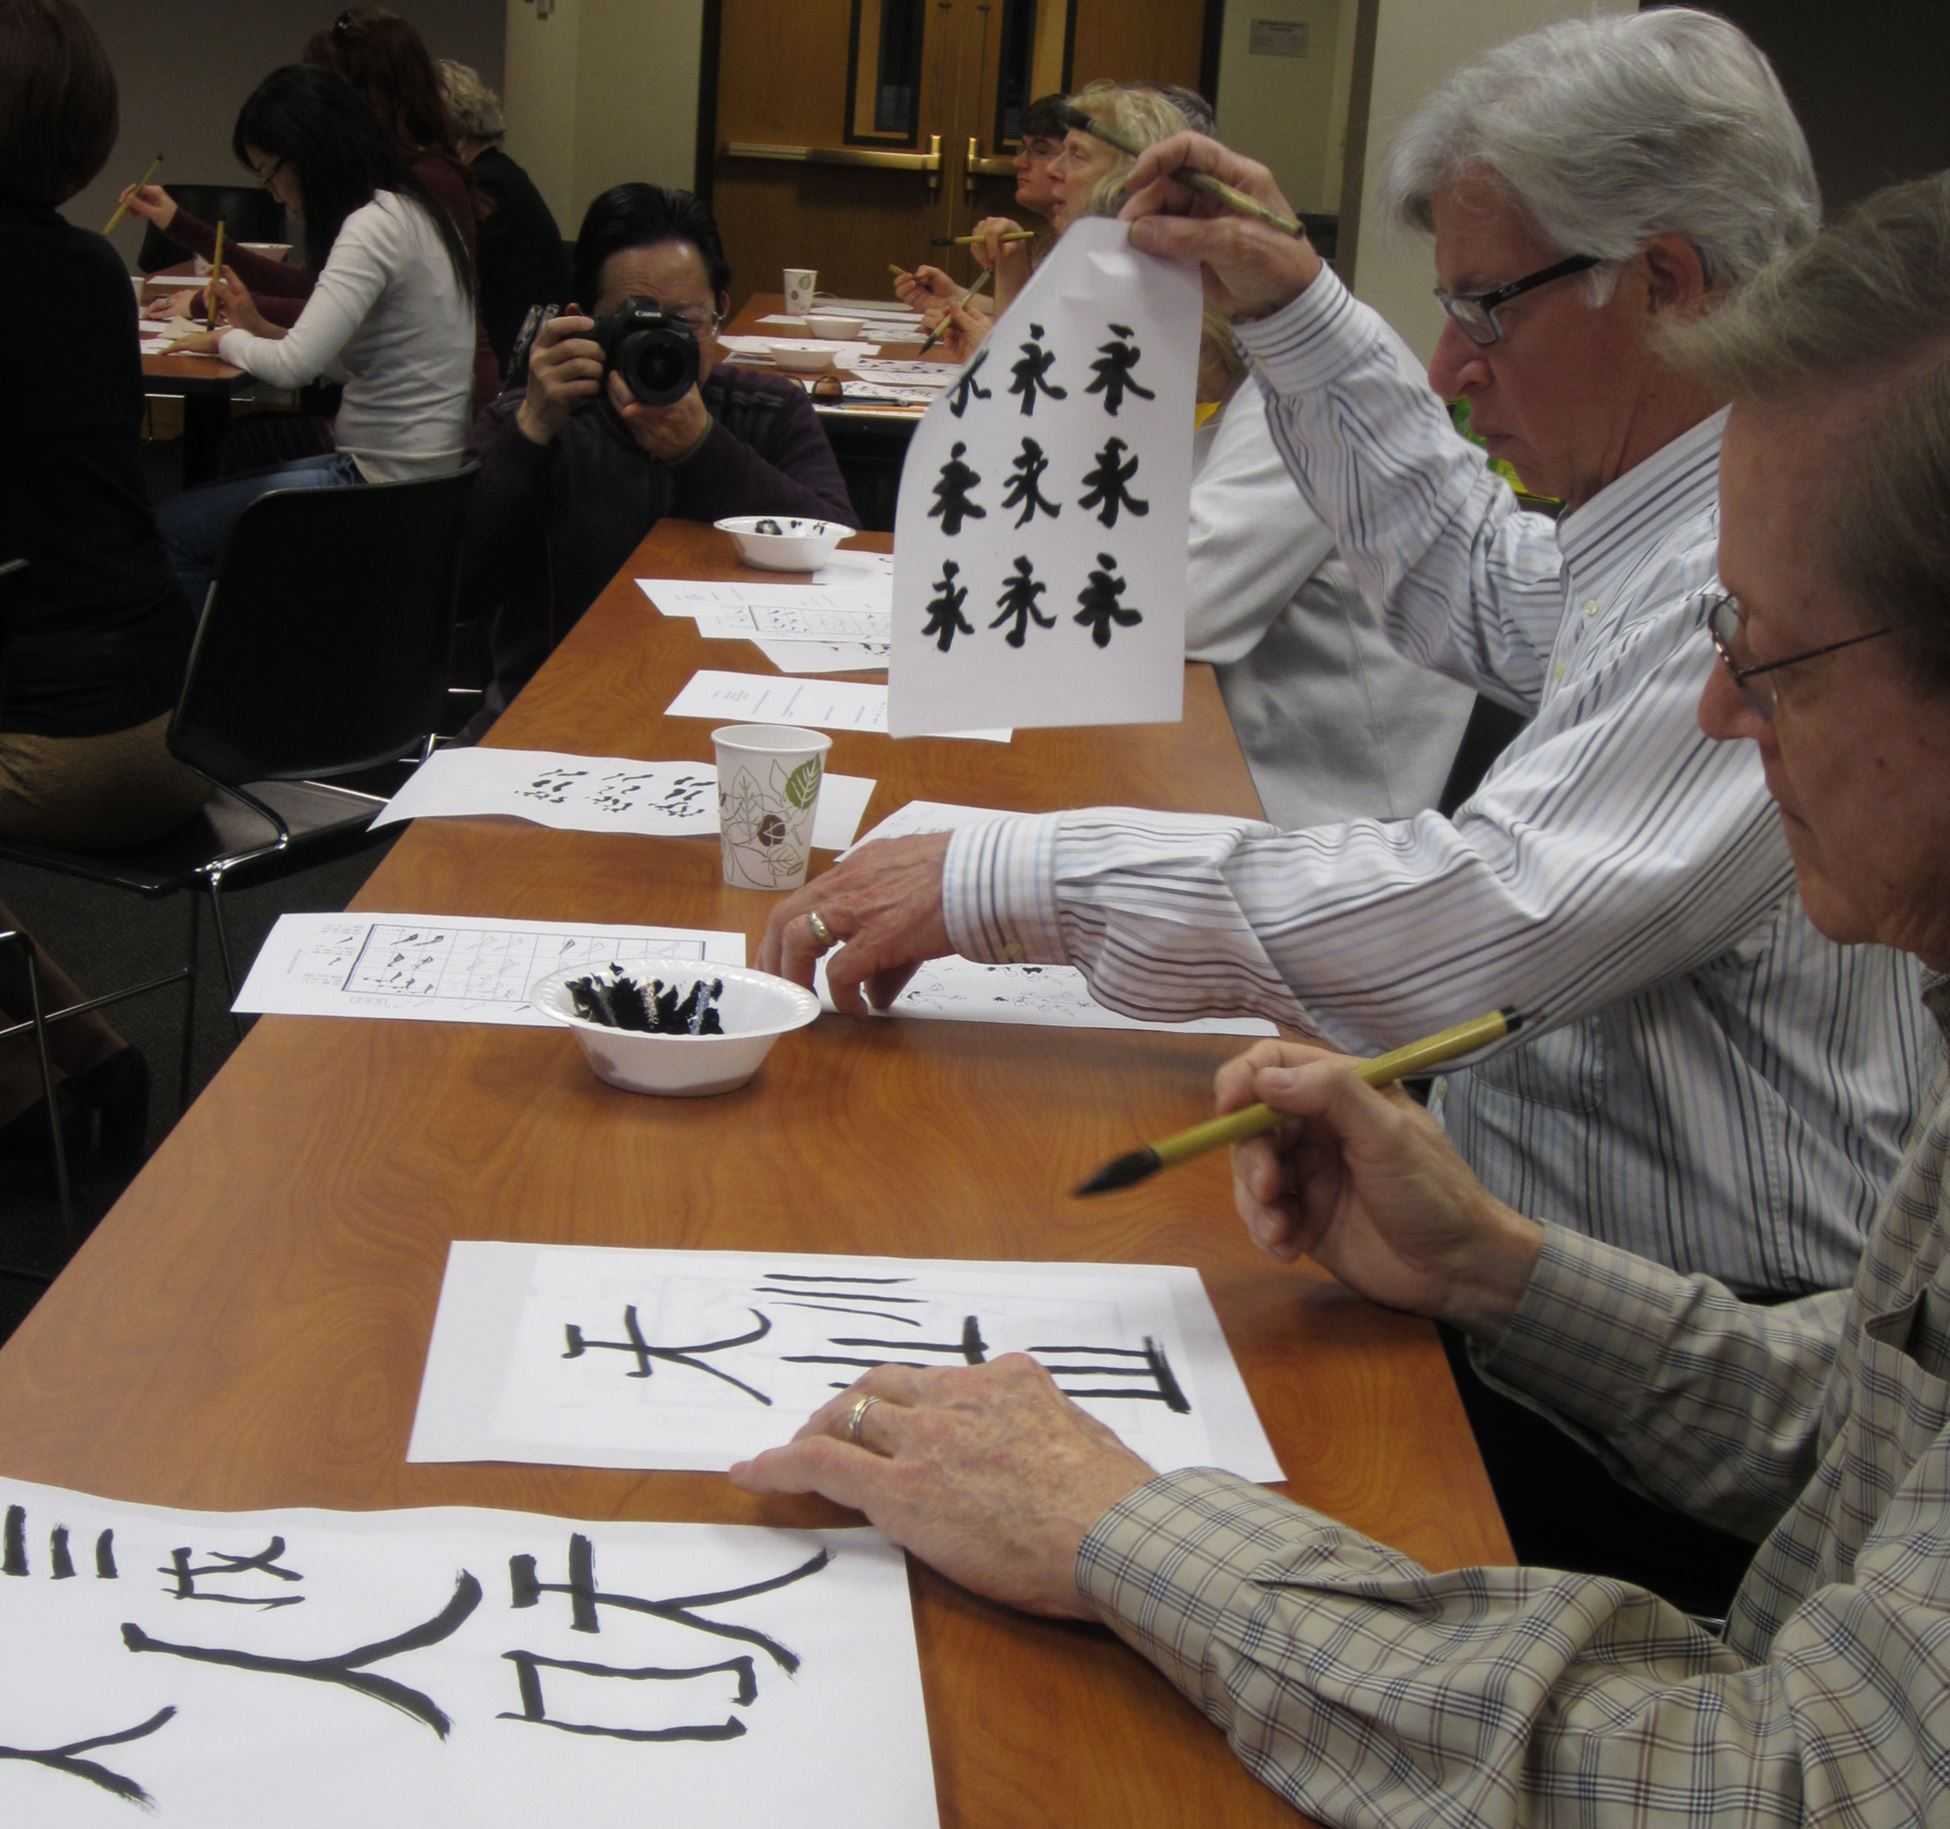 caligraphy program